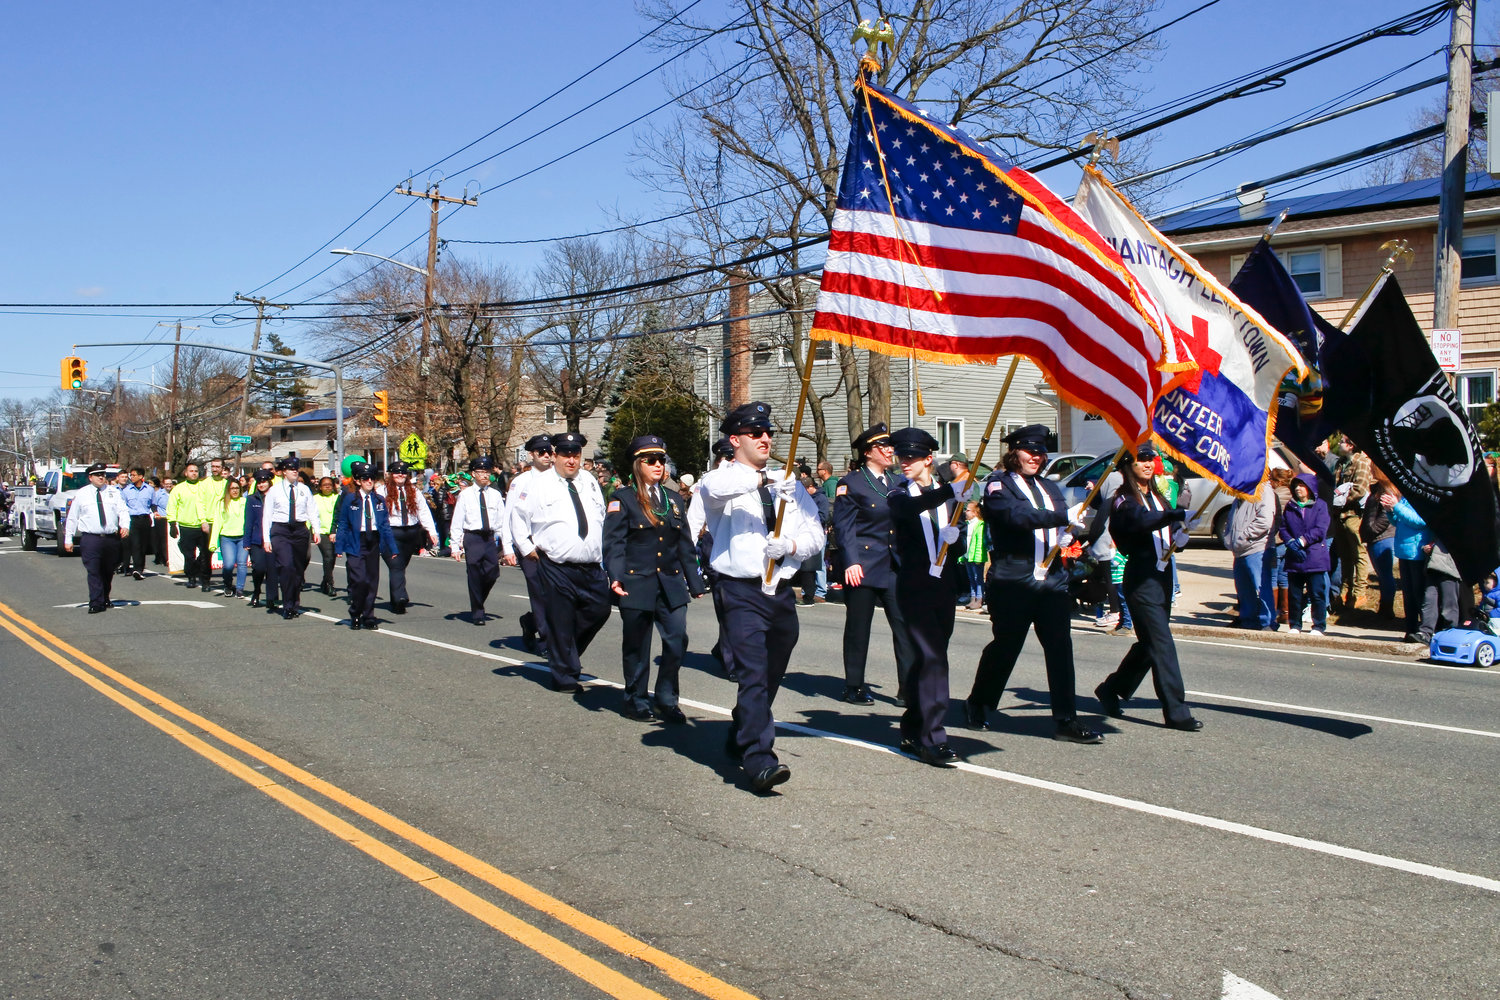 Members of the Wantagh-Levittown Volunteer Ambulance Corp. marched in the parade.